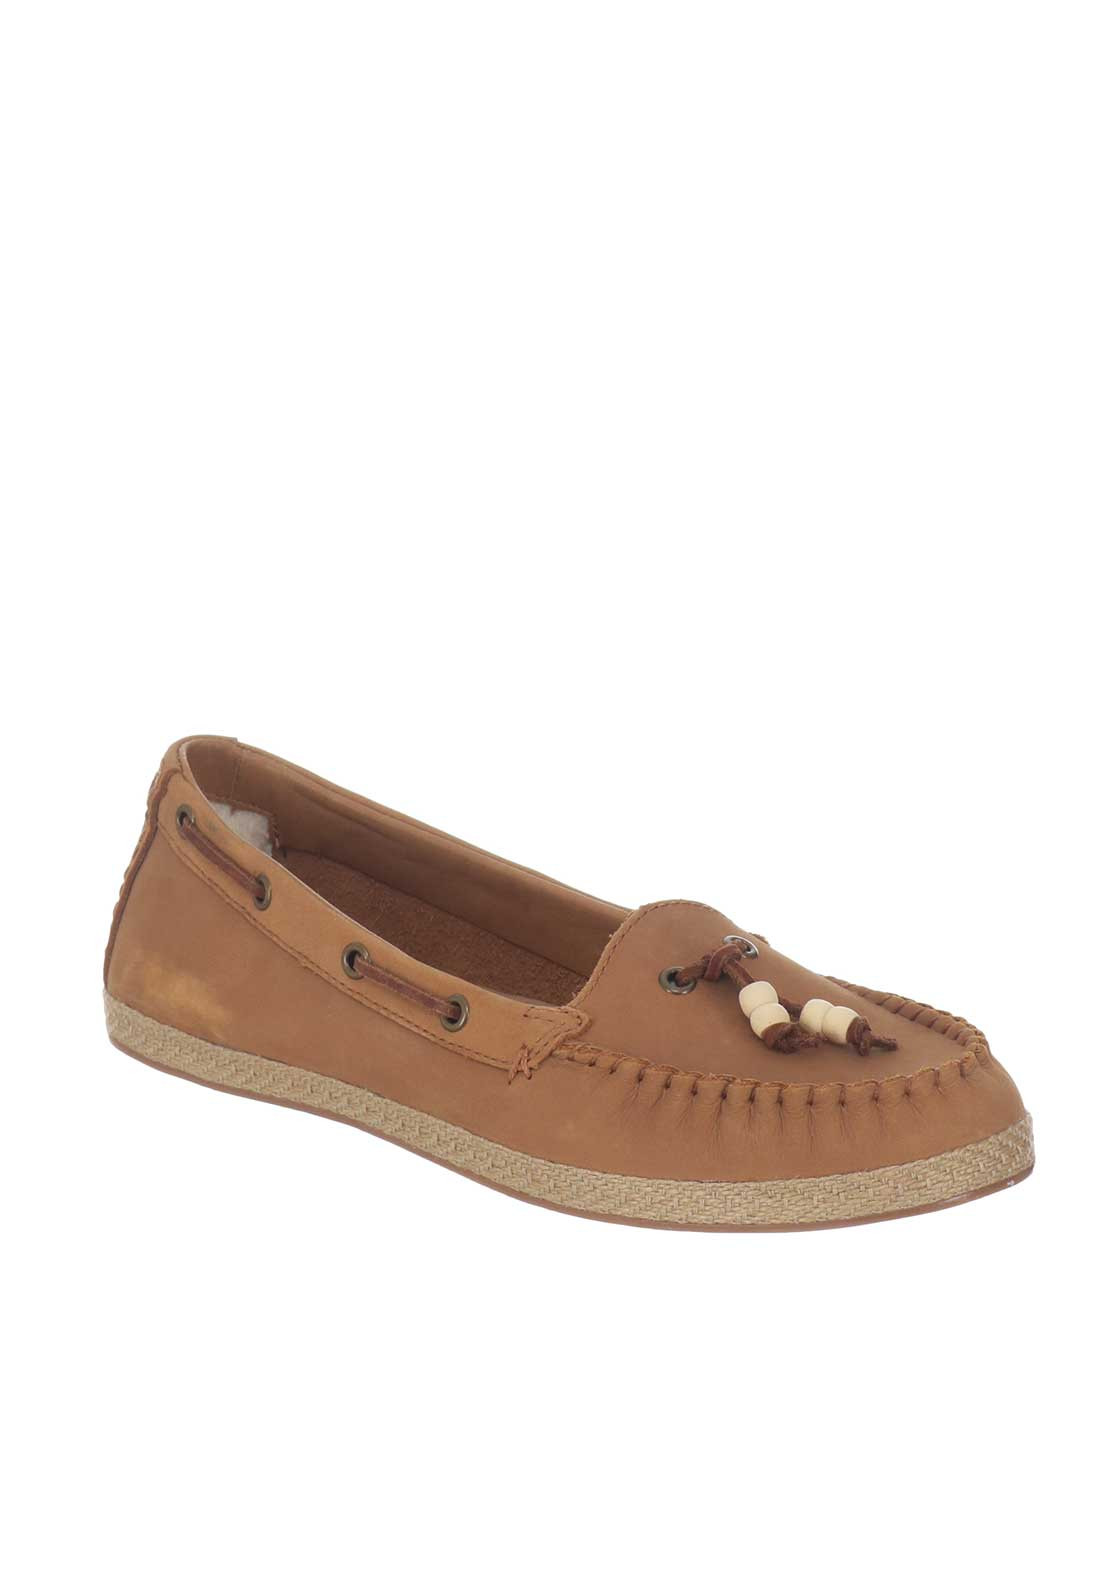 157c30eea3f UGG Australia Womens Suzette Leather Loafers, Tan